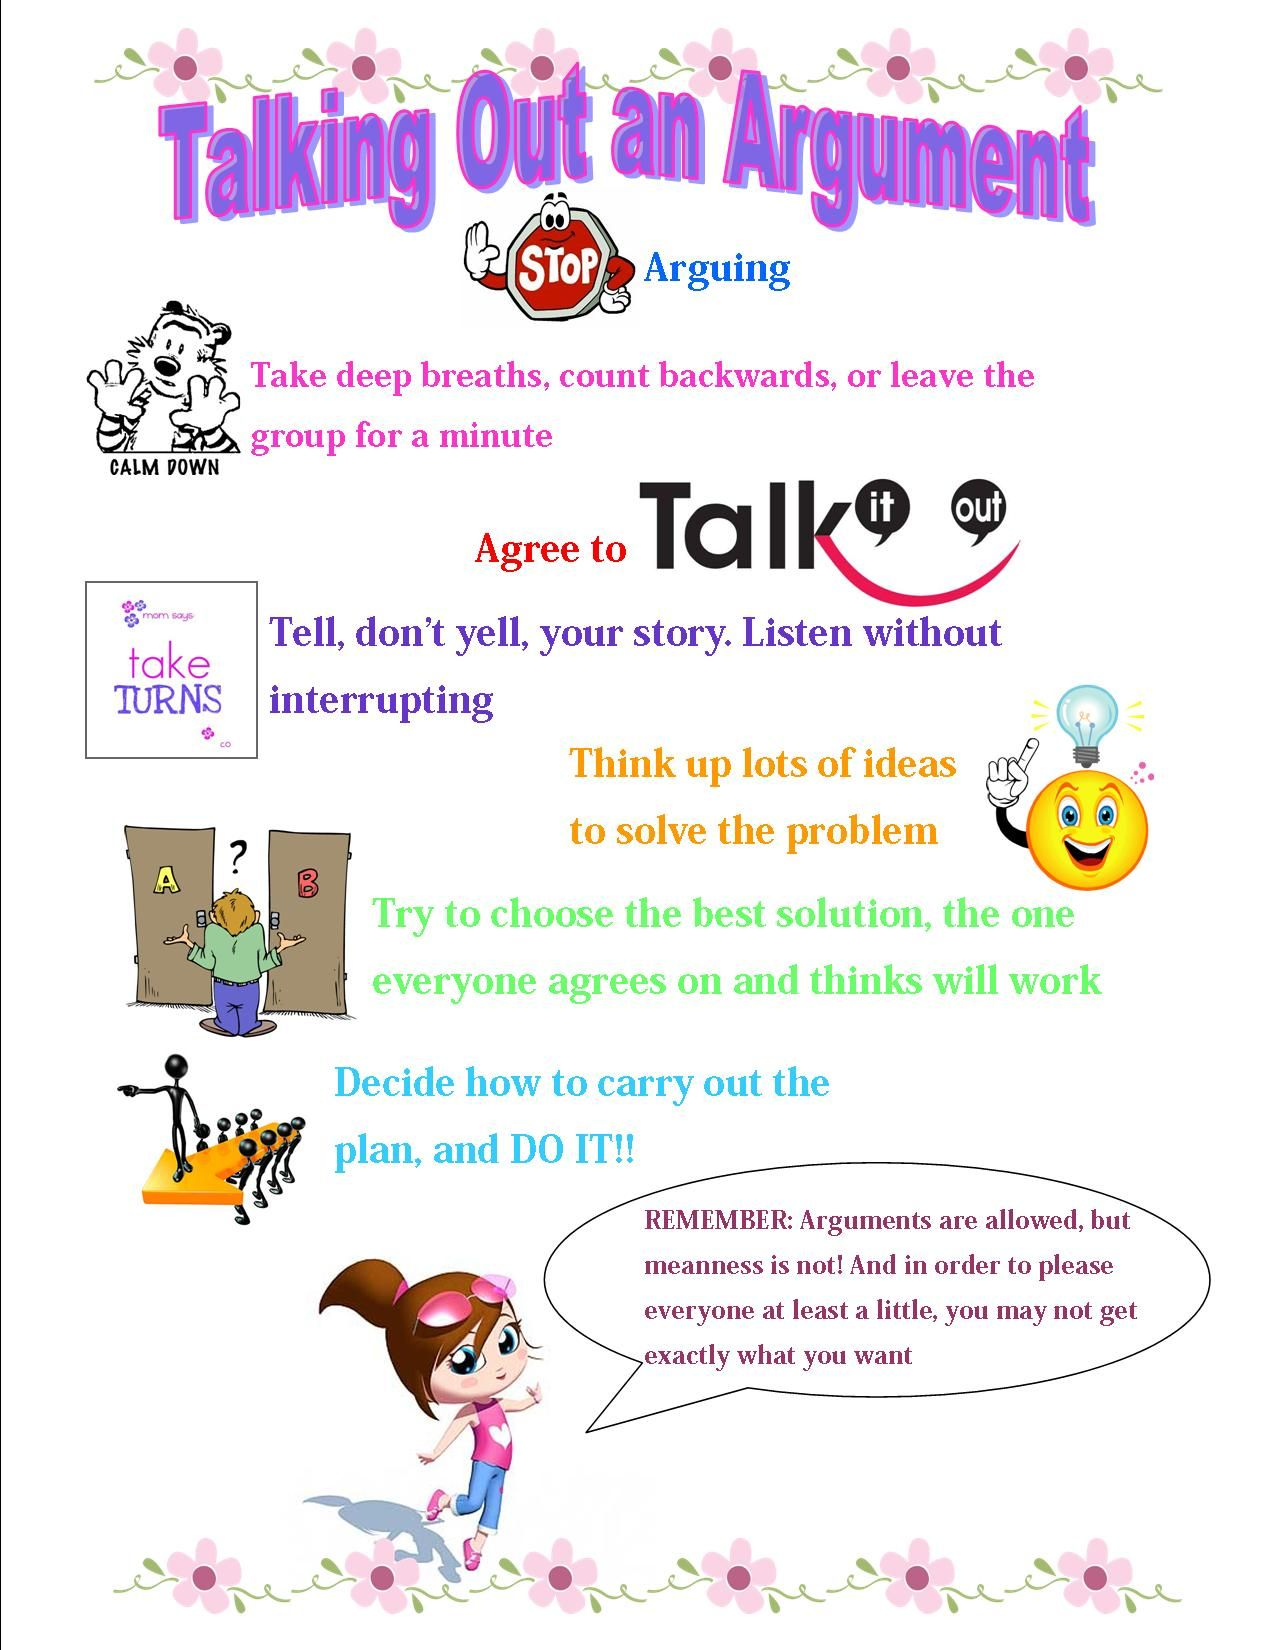 A Handout For An Girls Group On Friendship